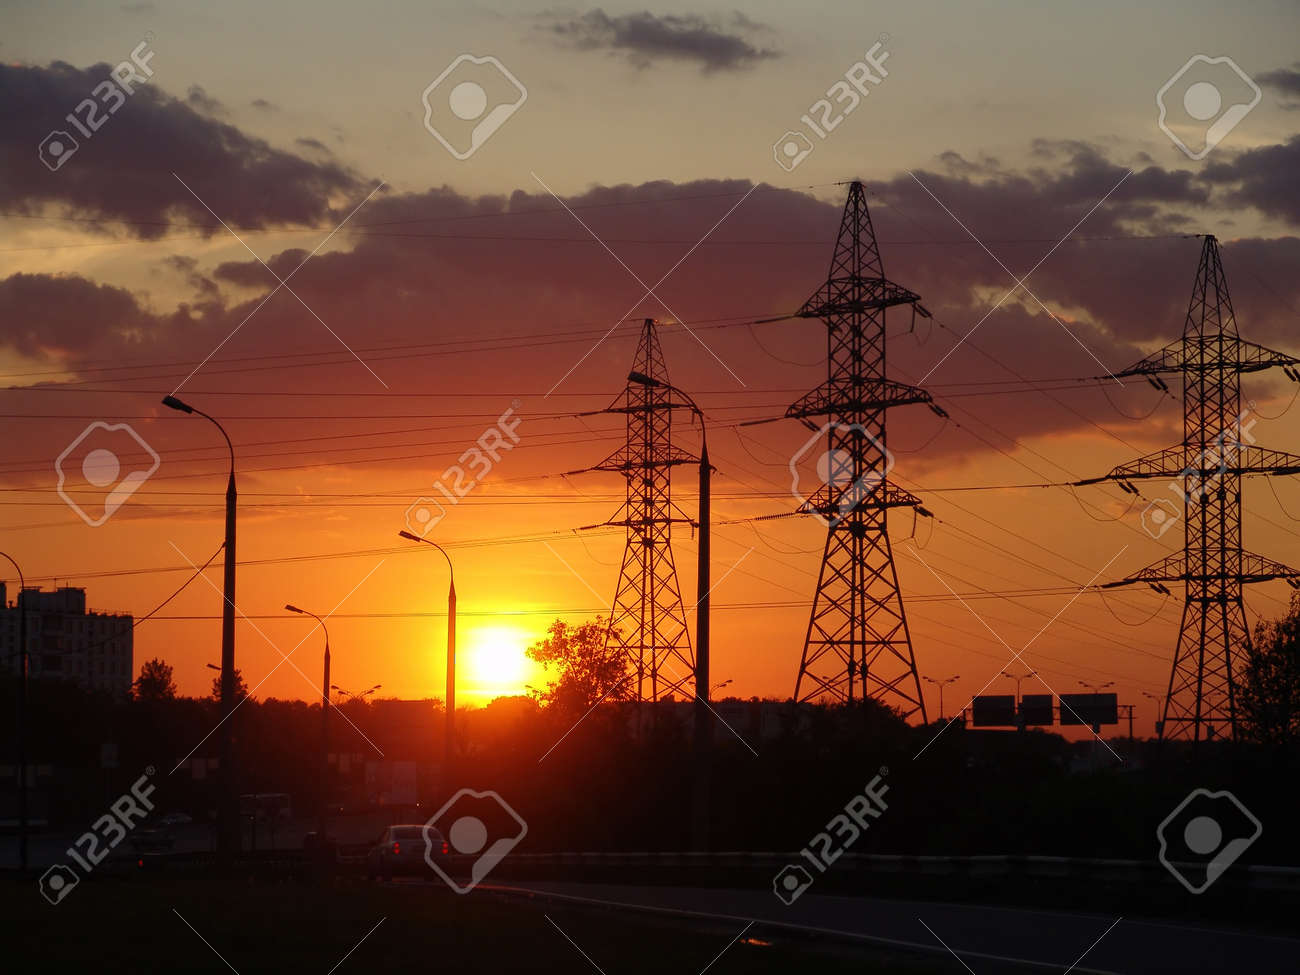 An urbanistic landscape at evening with a highway and power poles Stock Photo - 1448351